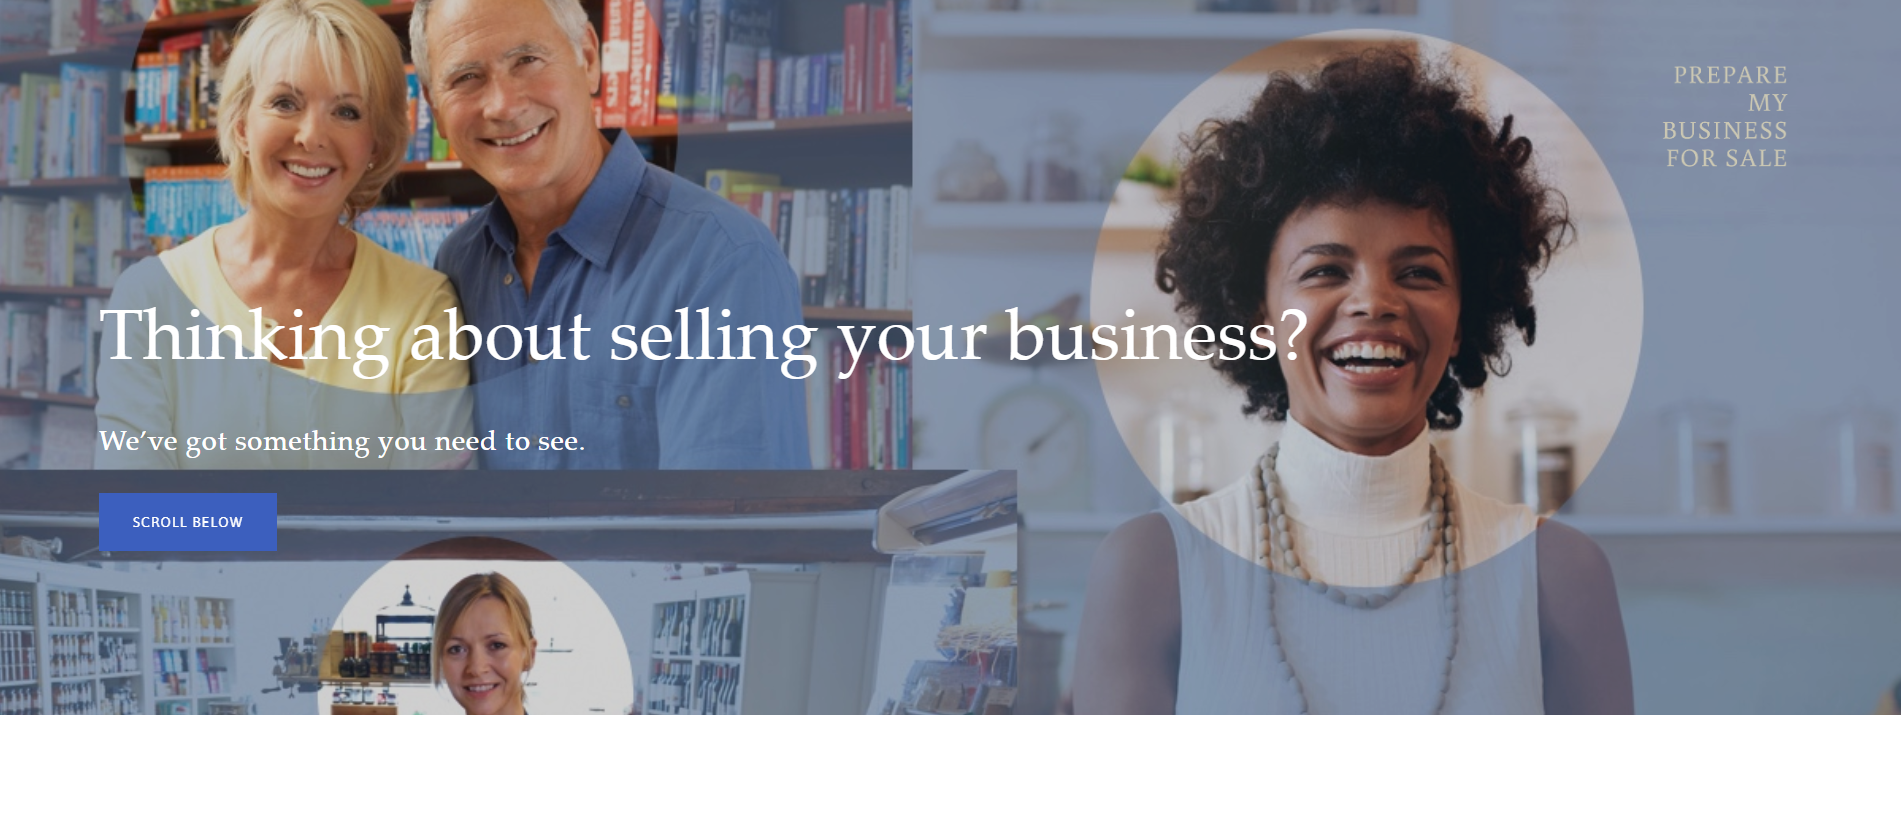 How to Prepare my Business for Sale Home.PNG